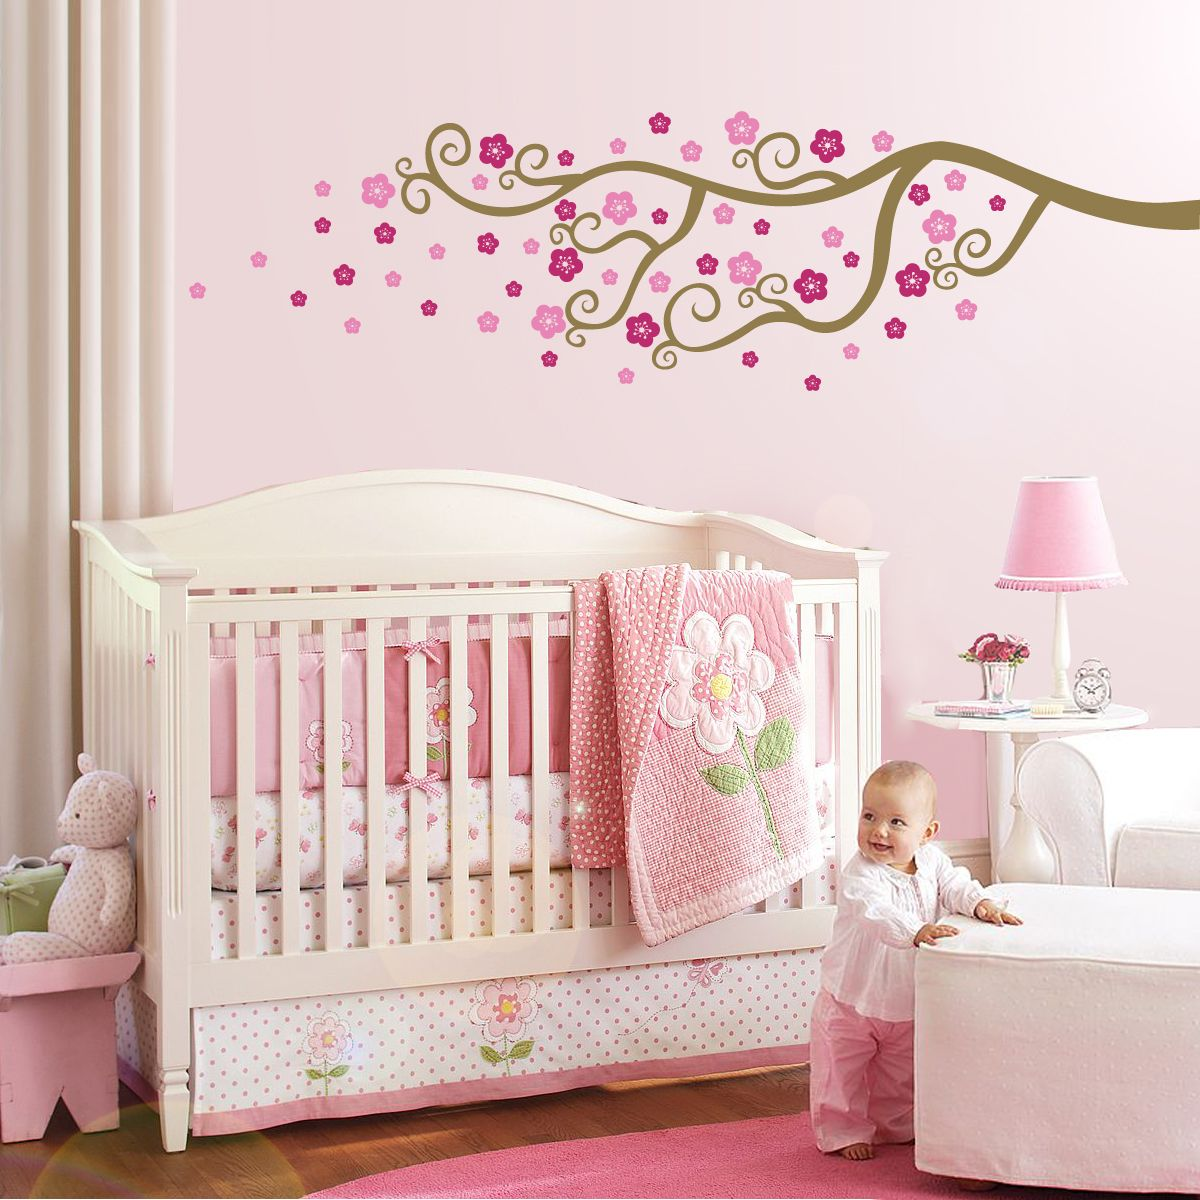 Creative Paint Ideas For Kids Bedroom Captivating Pink Tree Wall Decal Baby Room With Pink And